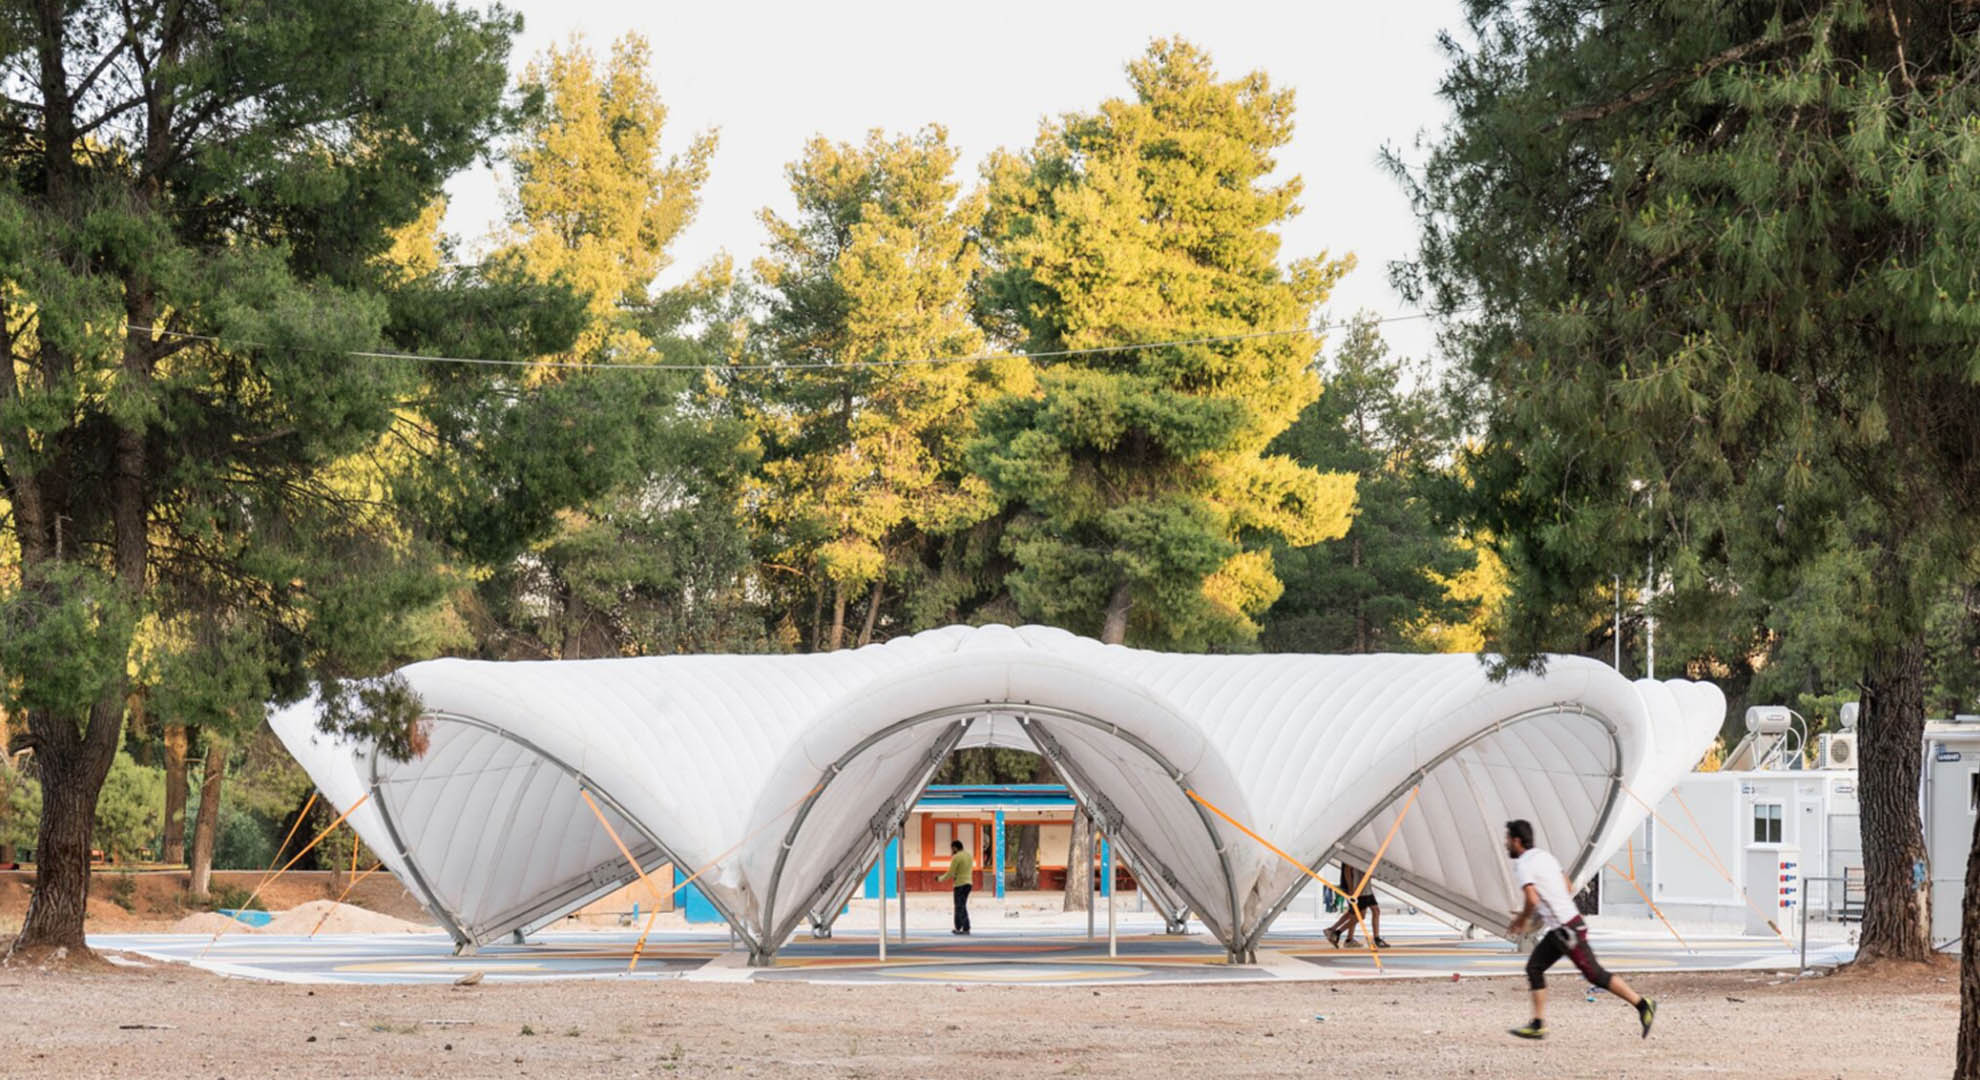 Design and architecture to confront the refugee crisis